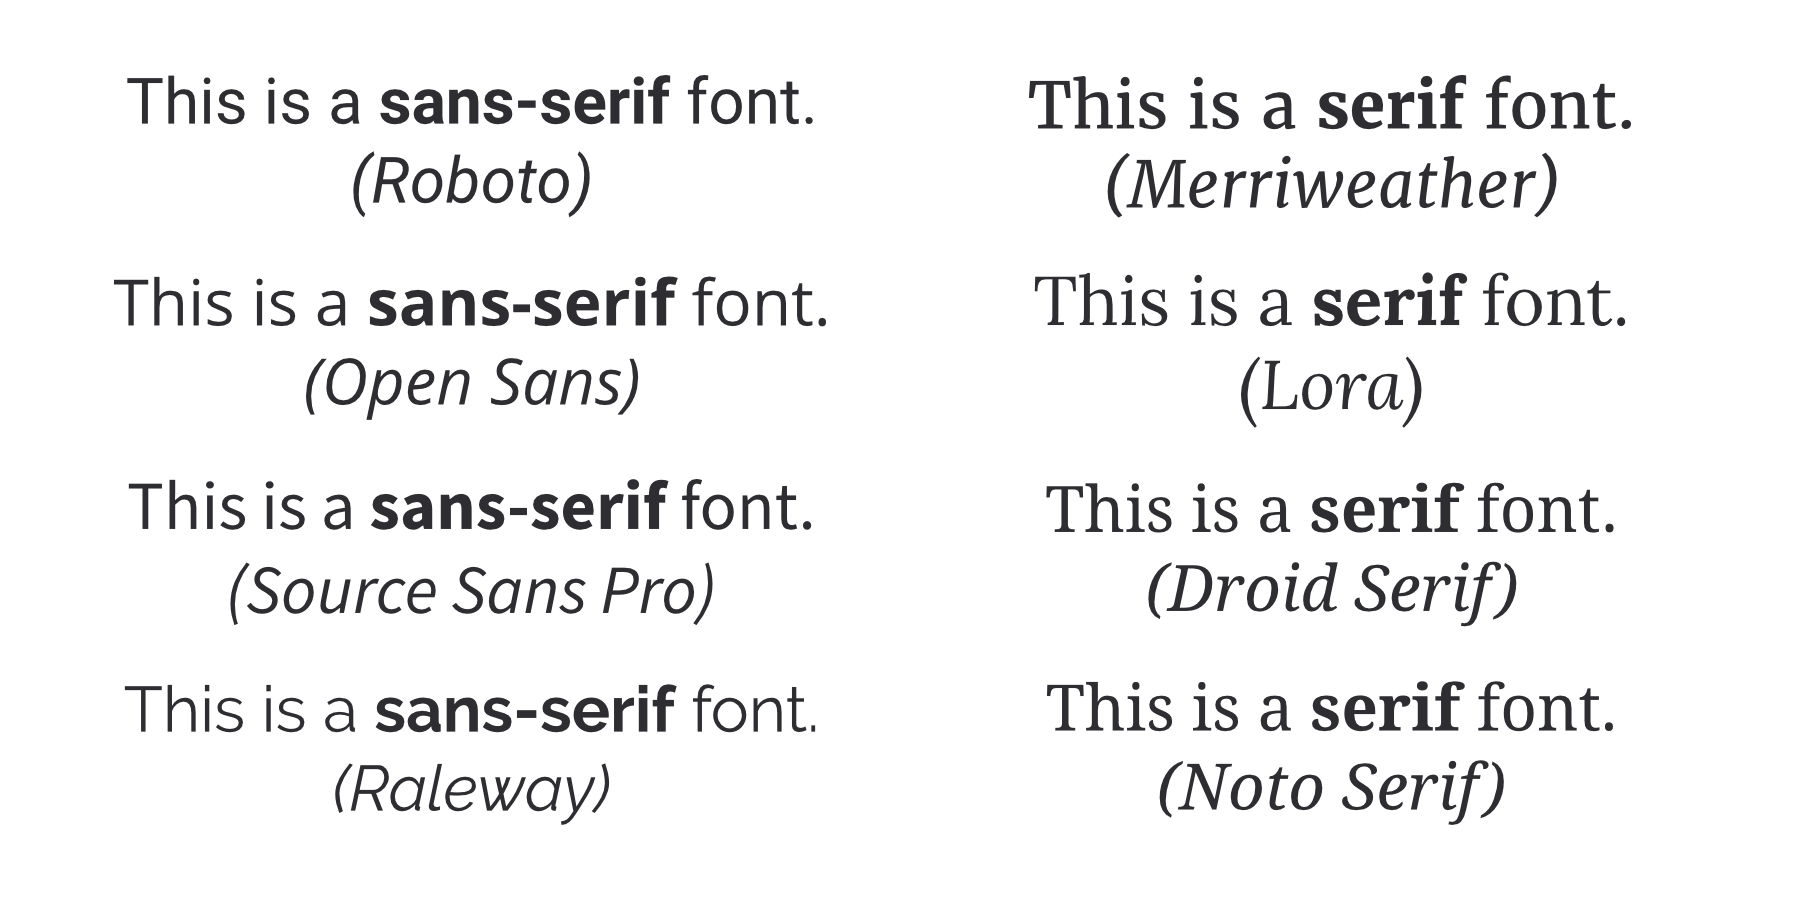 Examples of sans-serif and serif fonts